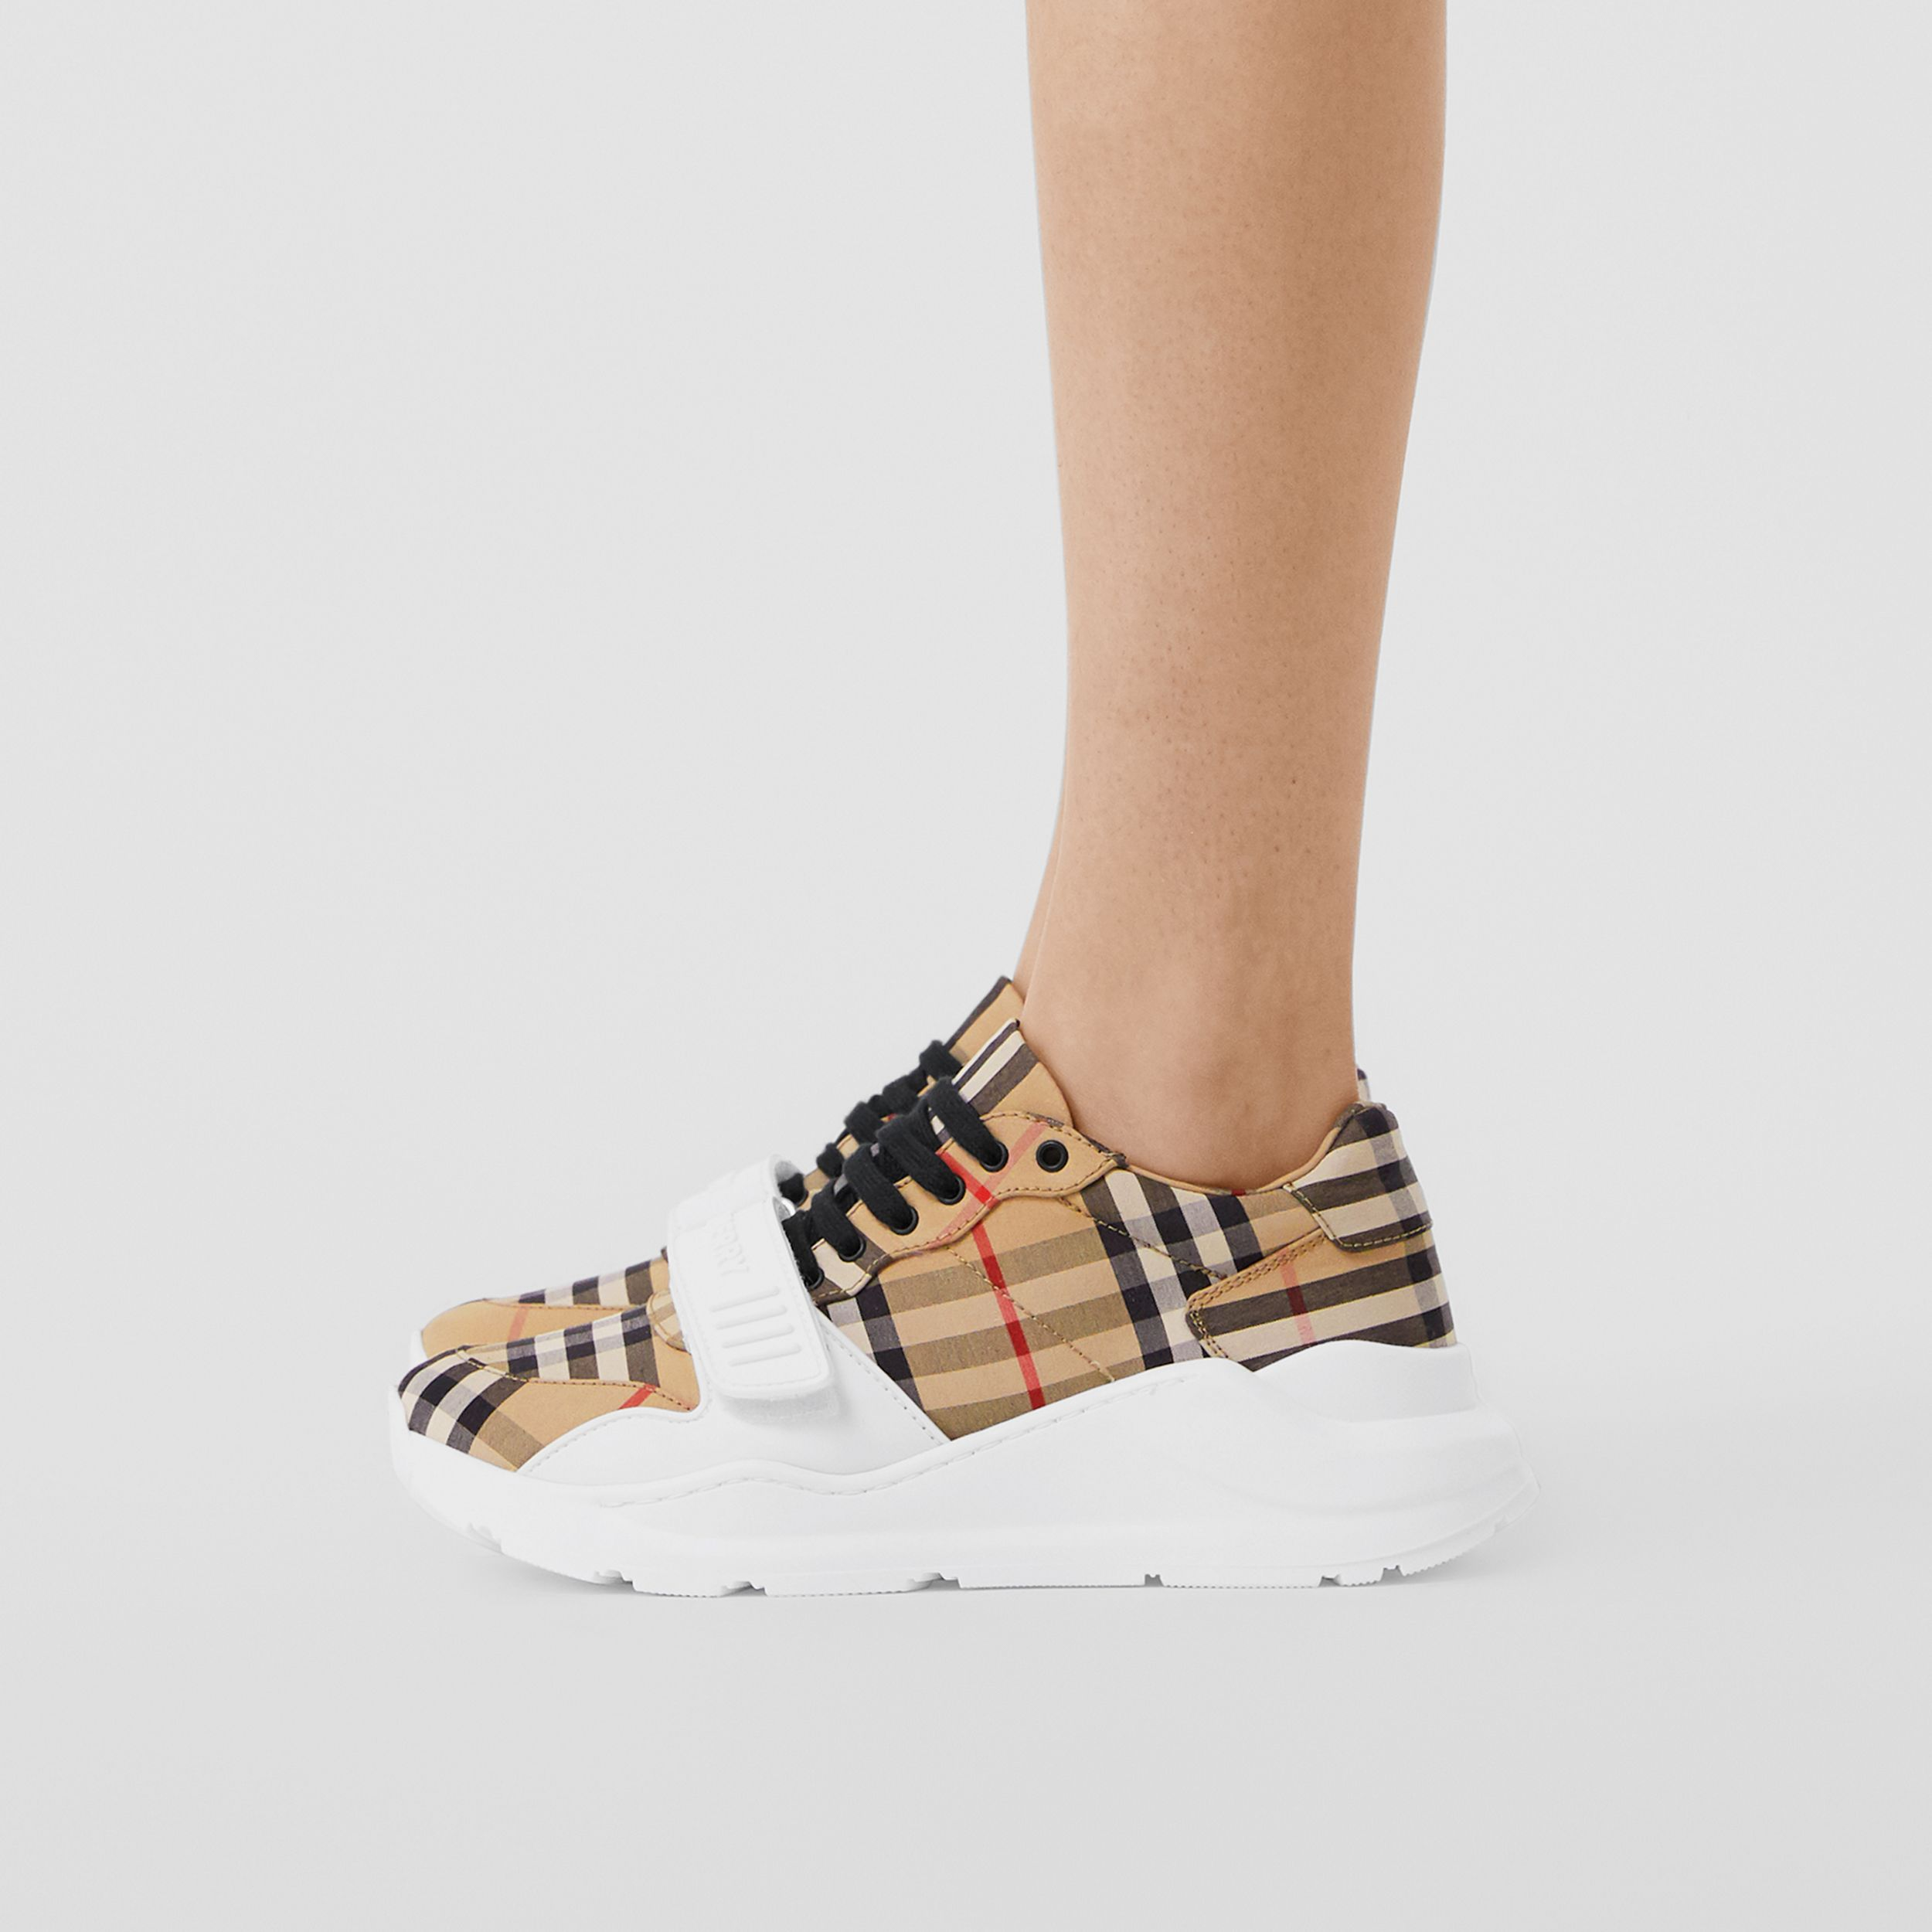 Vintage Check Cotton Sneakers in Archive Beige - Women | Burberry Canada - 3